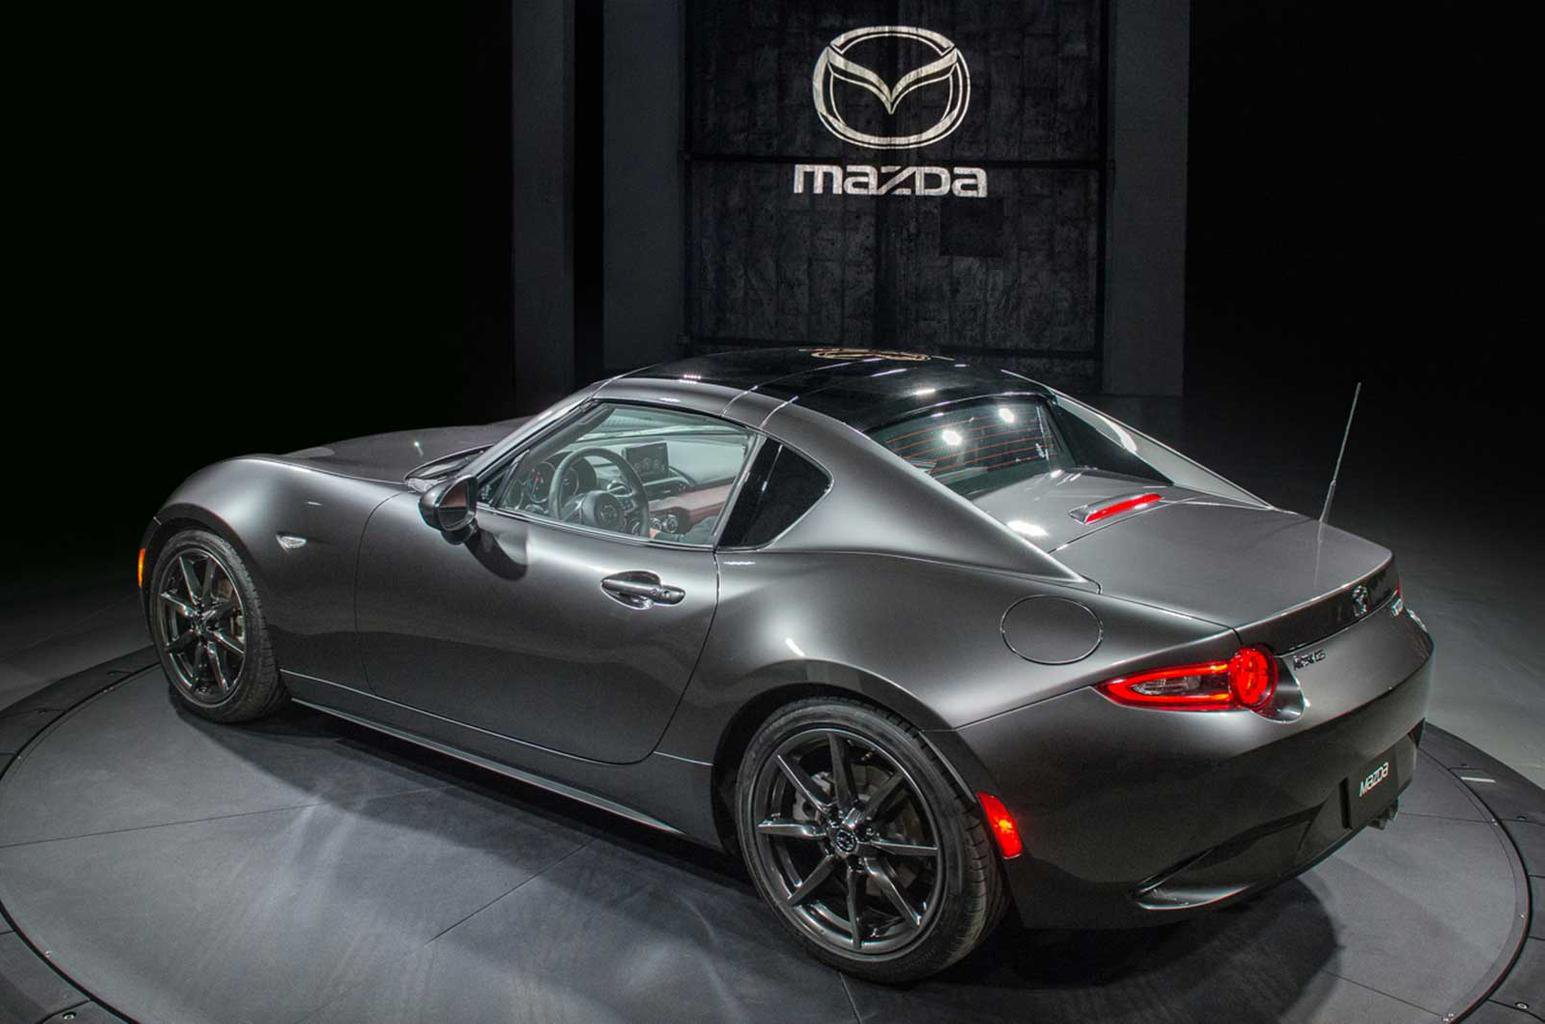 New Mazda MX-5 RF priced from £22,195